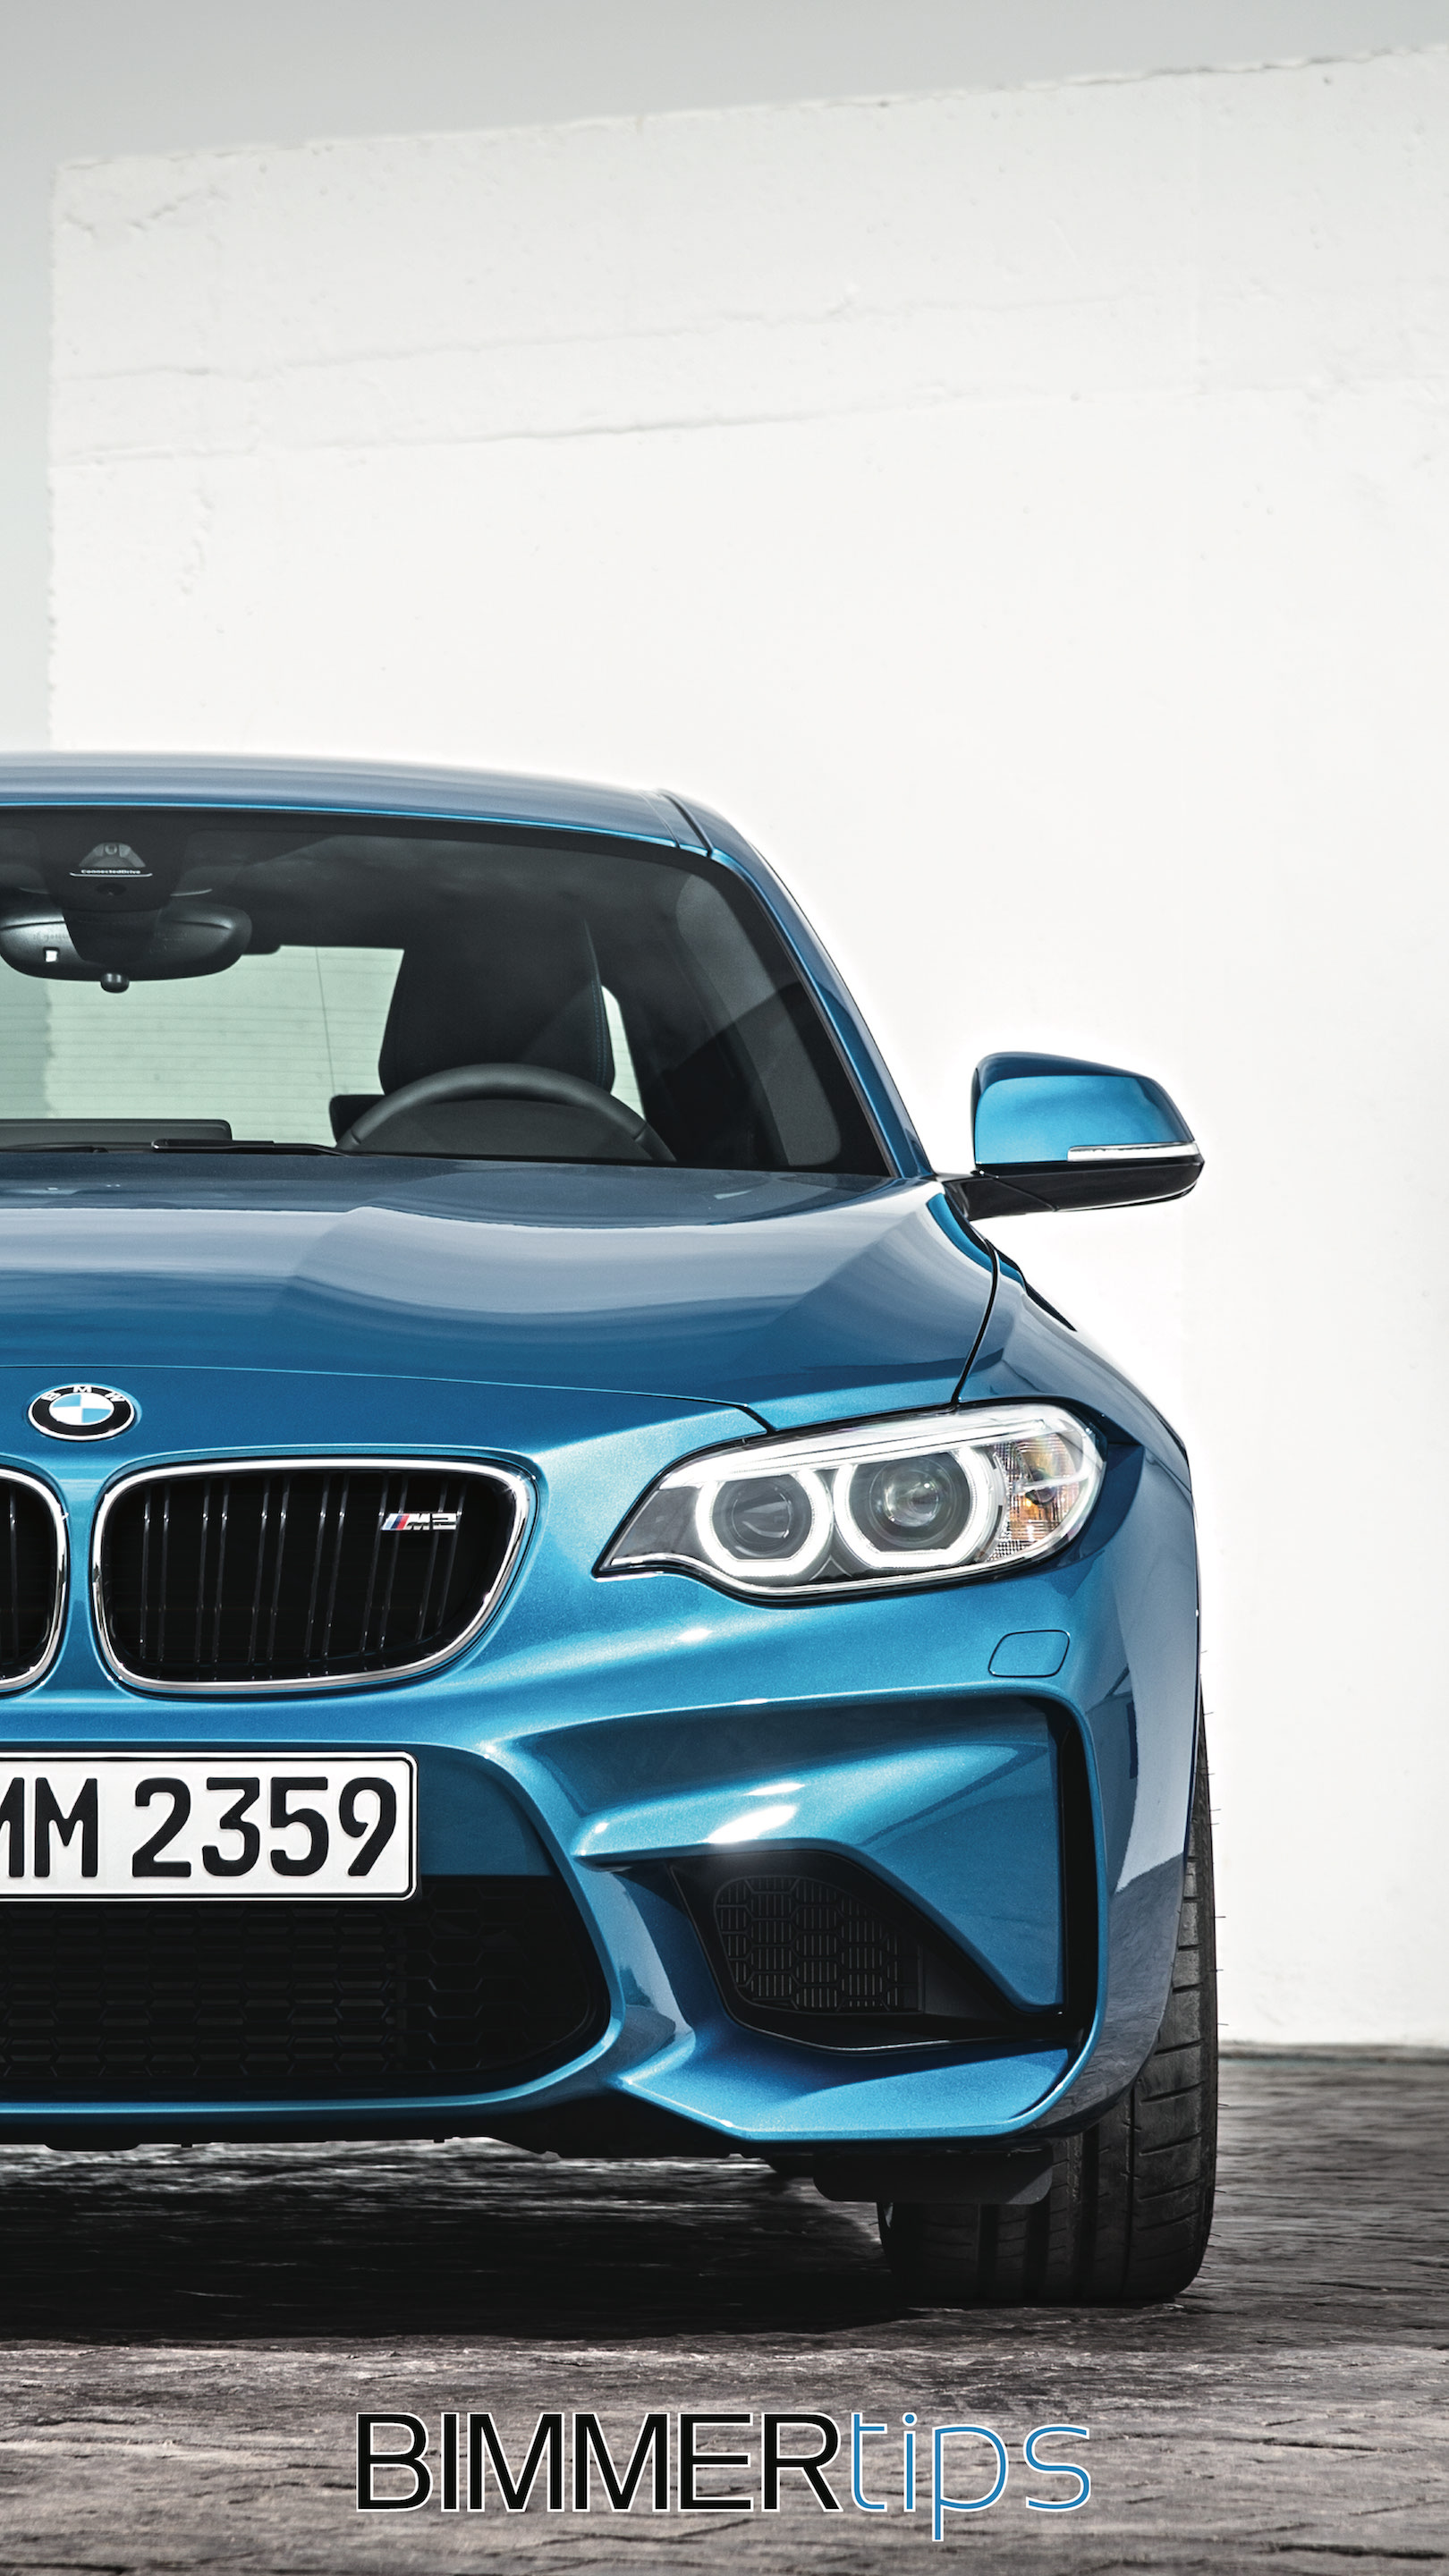 bmw wallpapers for iphone and android smartphones